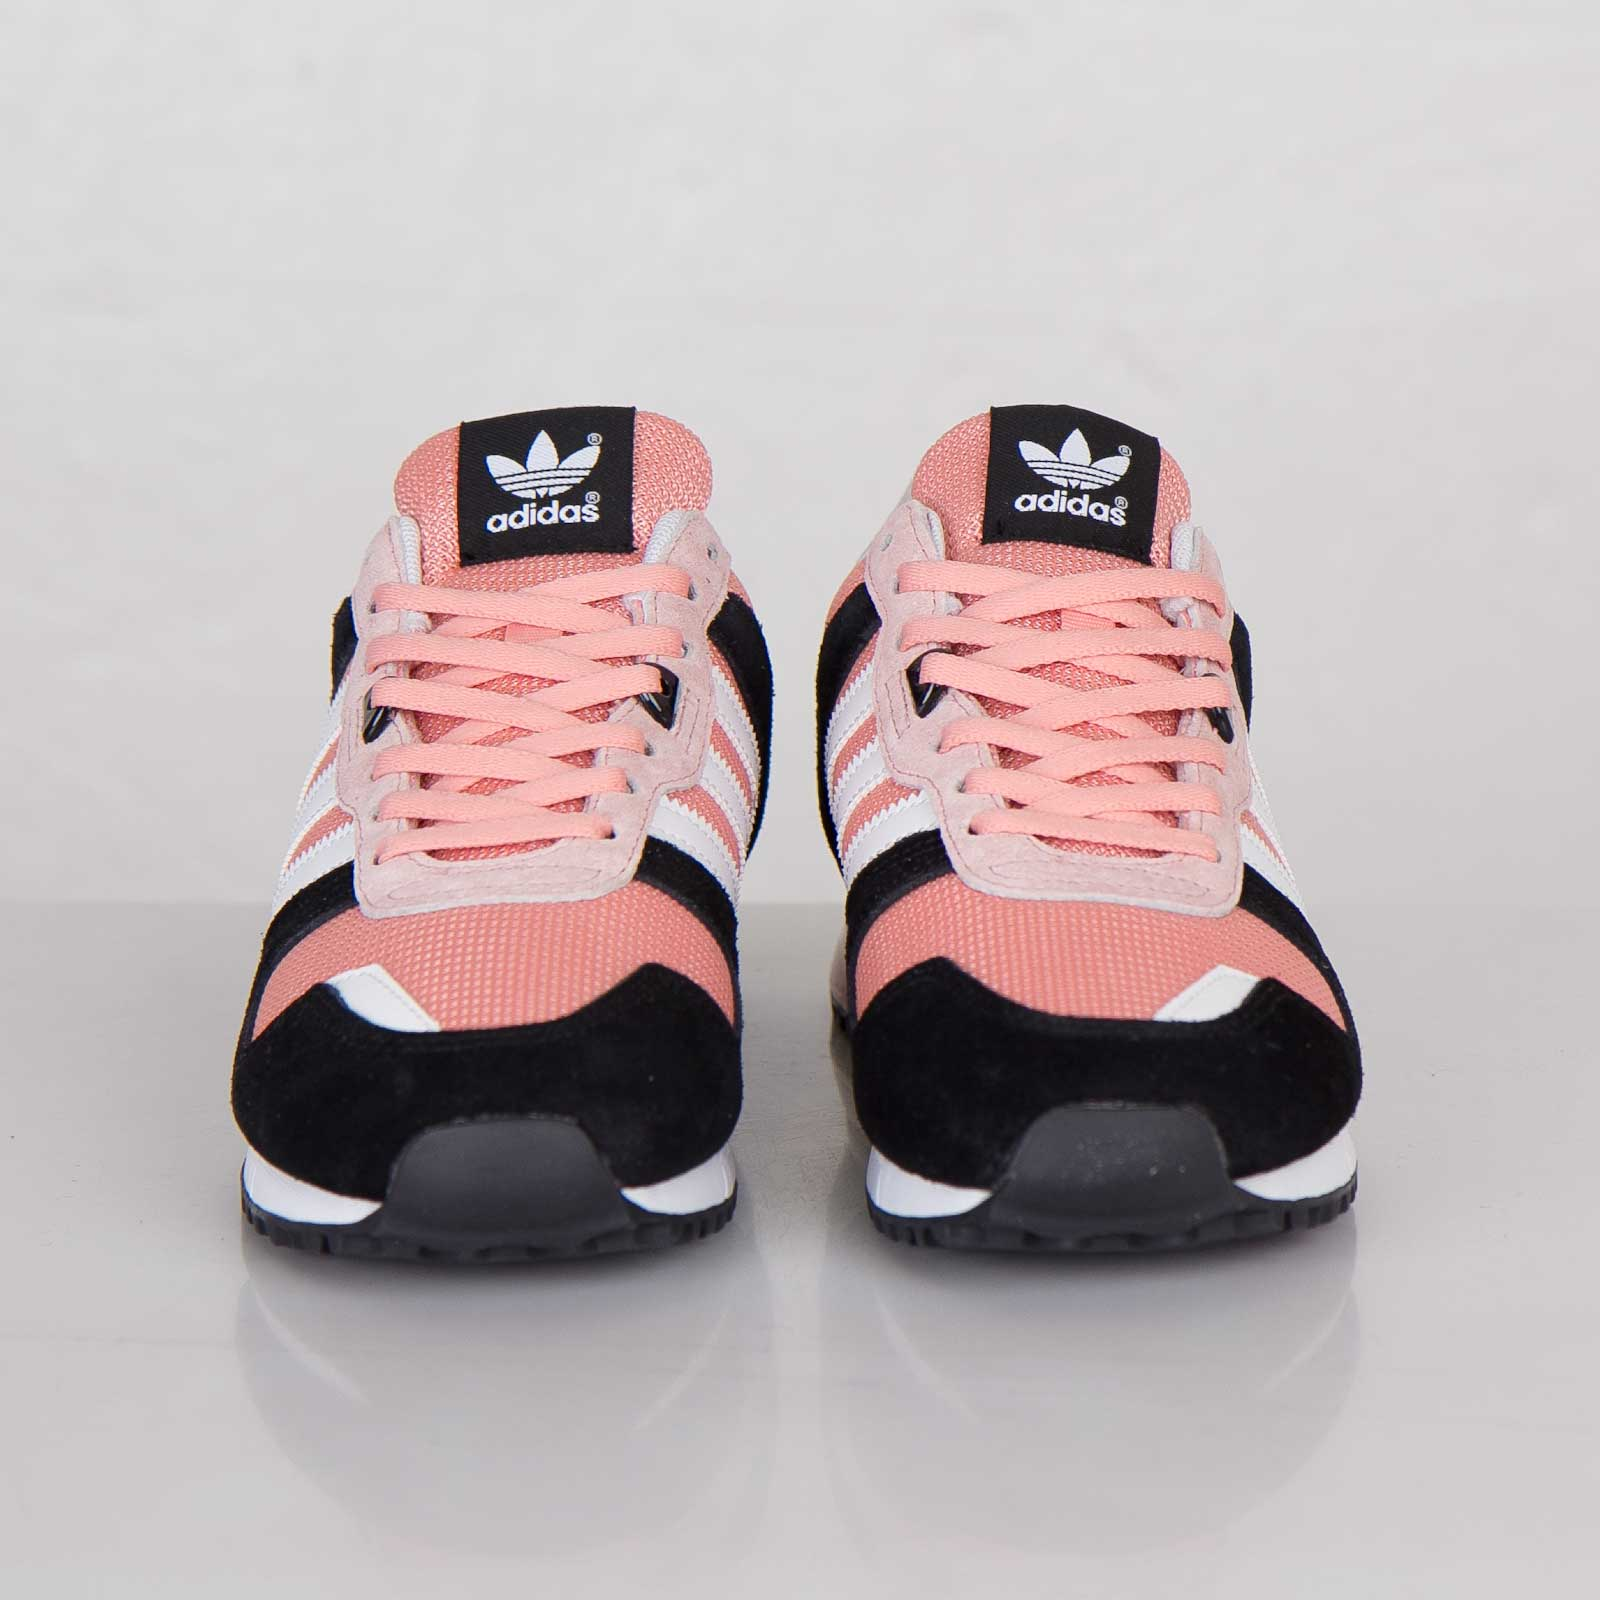 new concept 96461 67fbd ... white st fade rose 805c4 f0bc5  cheap adidas zx 700 w adidas zx 700 w  1f620 43762